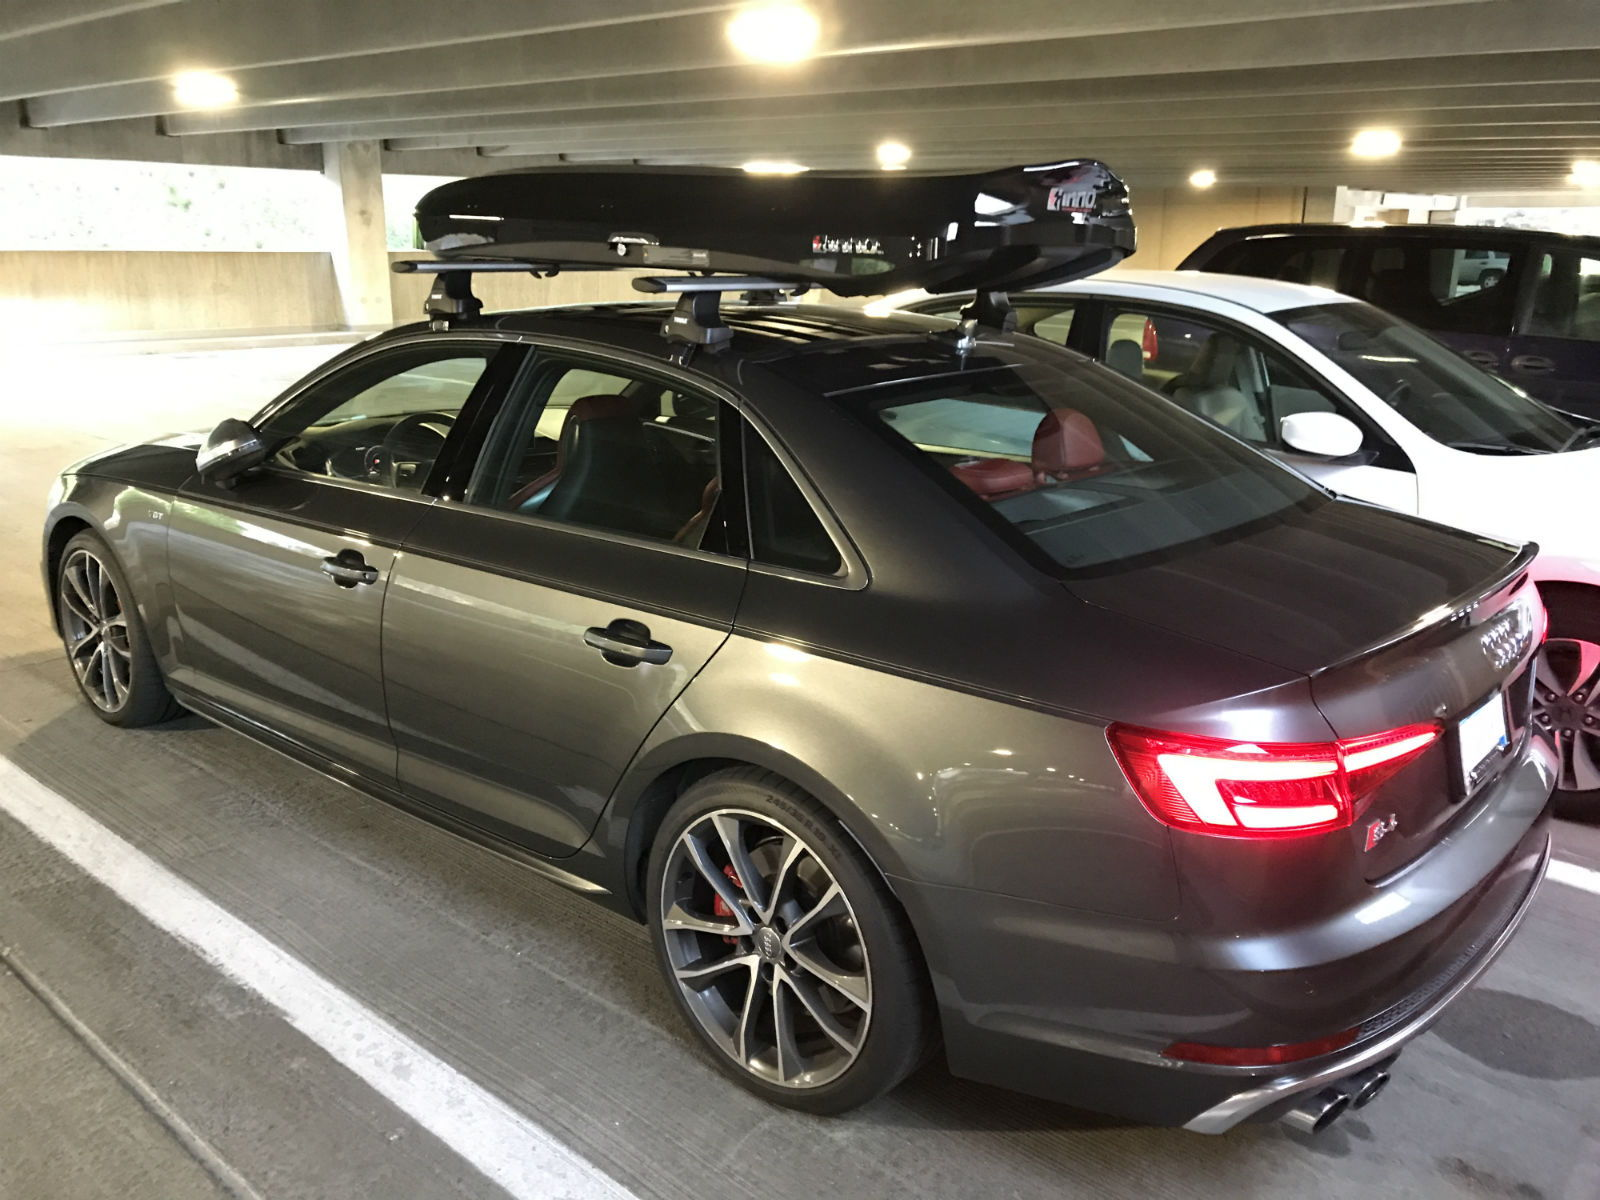 Audi San Jose >> Roof rack and cargo box fitted - AudiWorld Forums